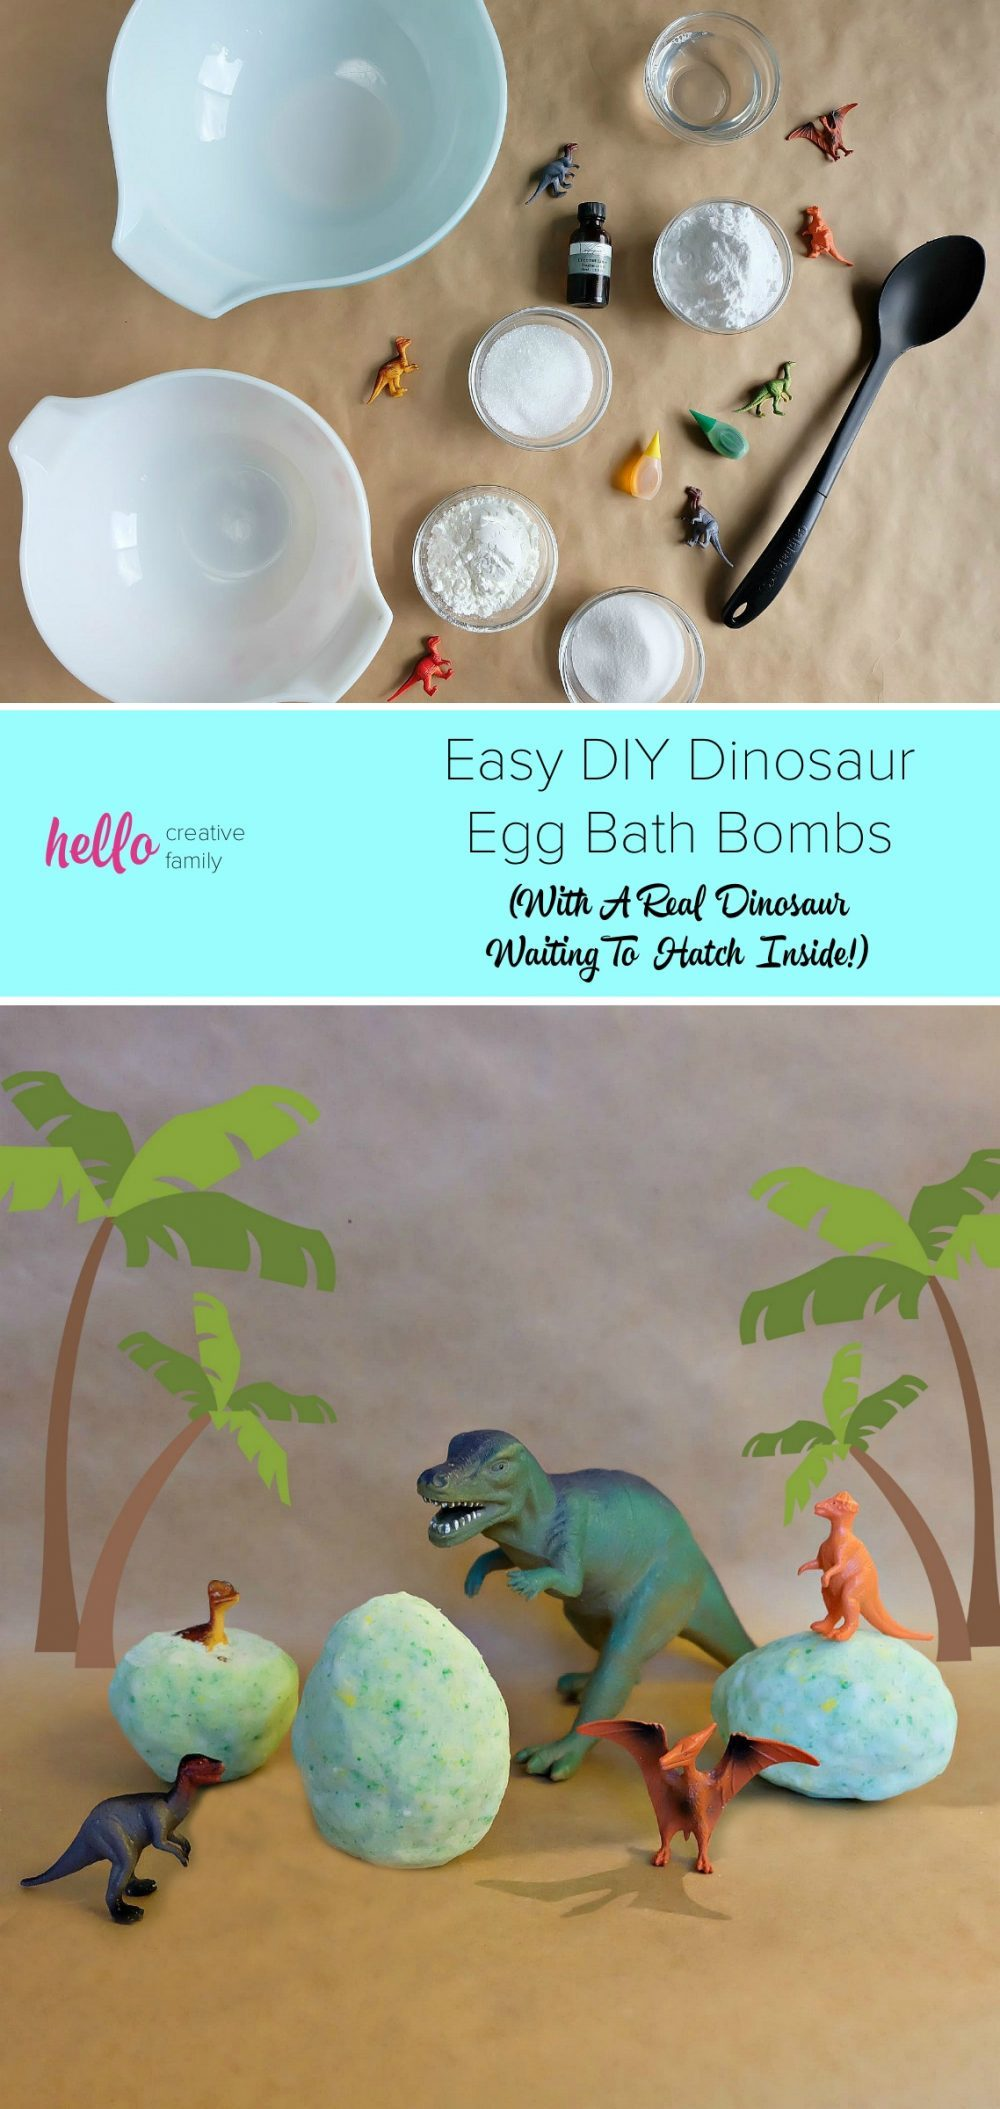 Bath bombs are easy to make at home, if you know how! Learn how to make these DIY Dinosaur Egg Bath Bombs. They have little toy dinosaurs hidden inside and make a great gift idea for dinosaur loving boys and girls! Give them as a handmade stocking stuffer and make bath time fun! #StockingStuffer #Handmade #DIY #Dinosaur #Boygiftidea